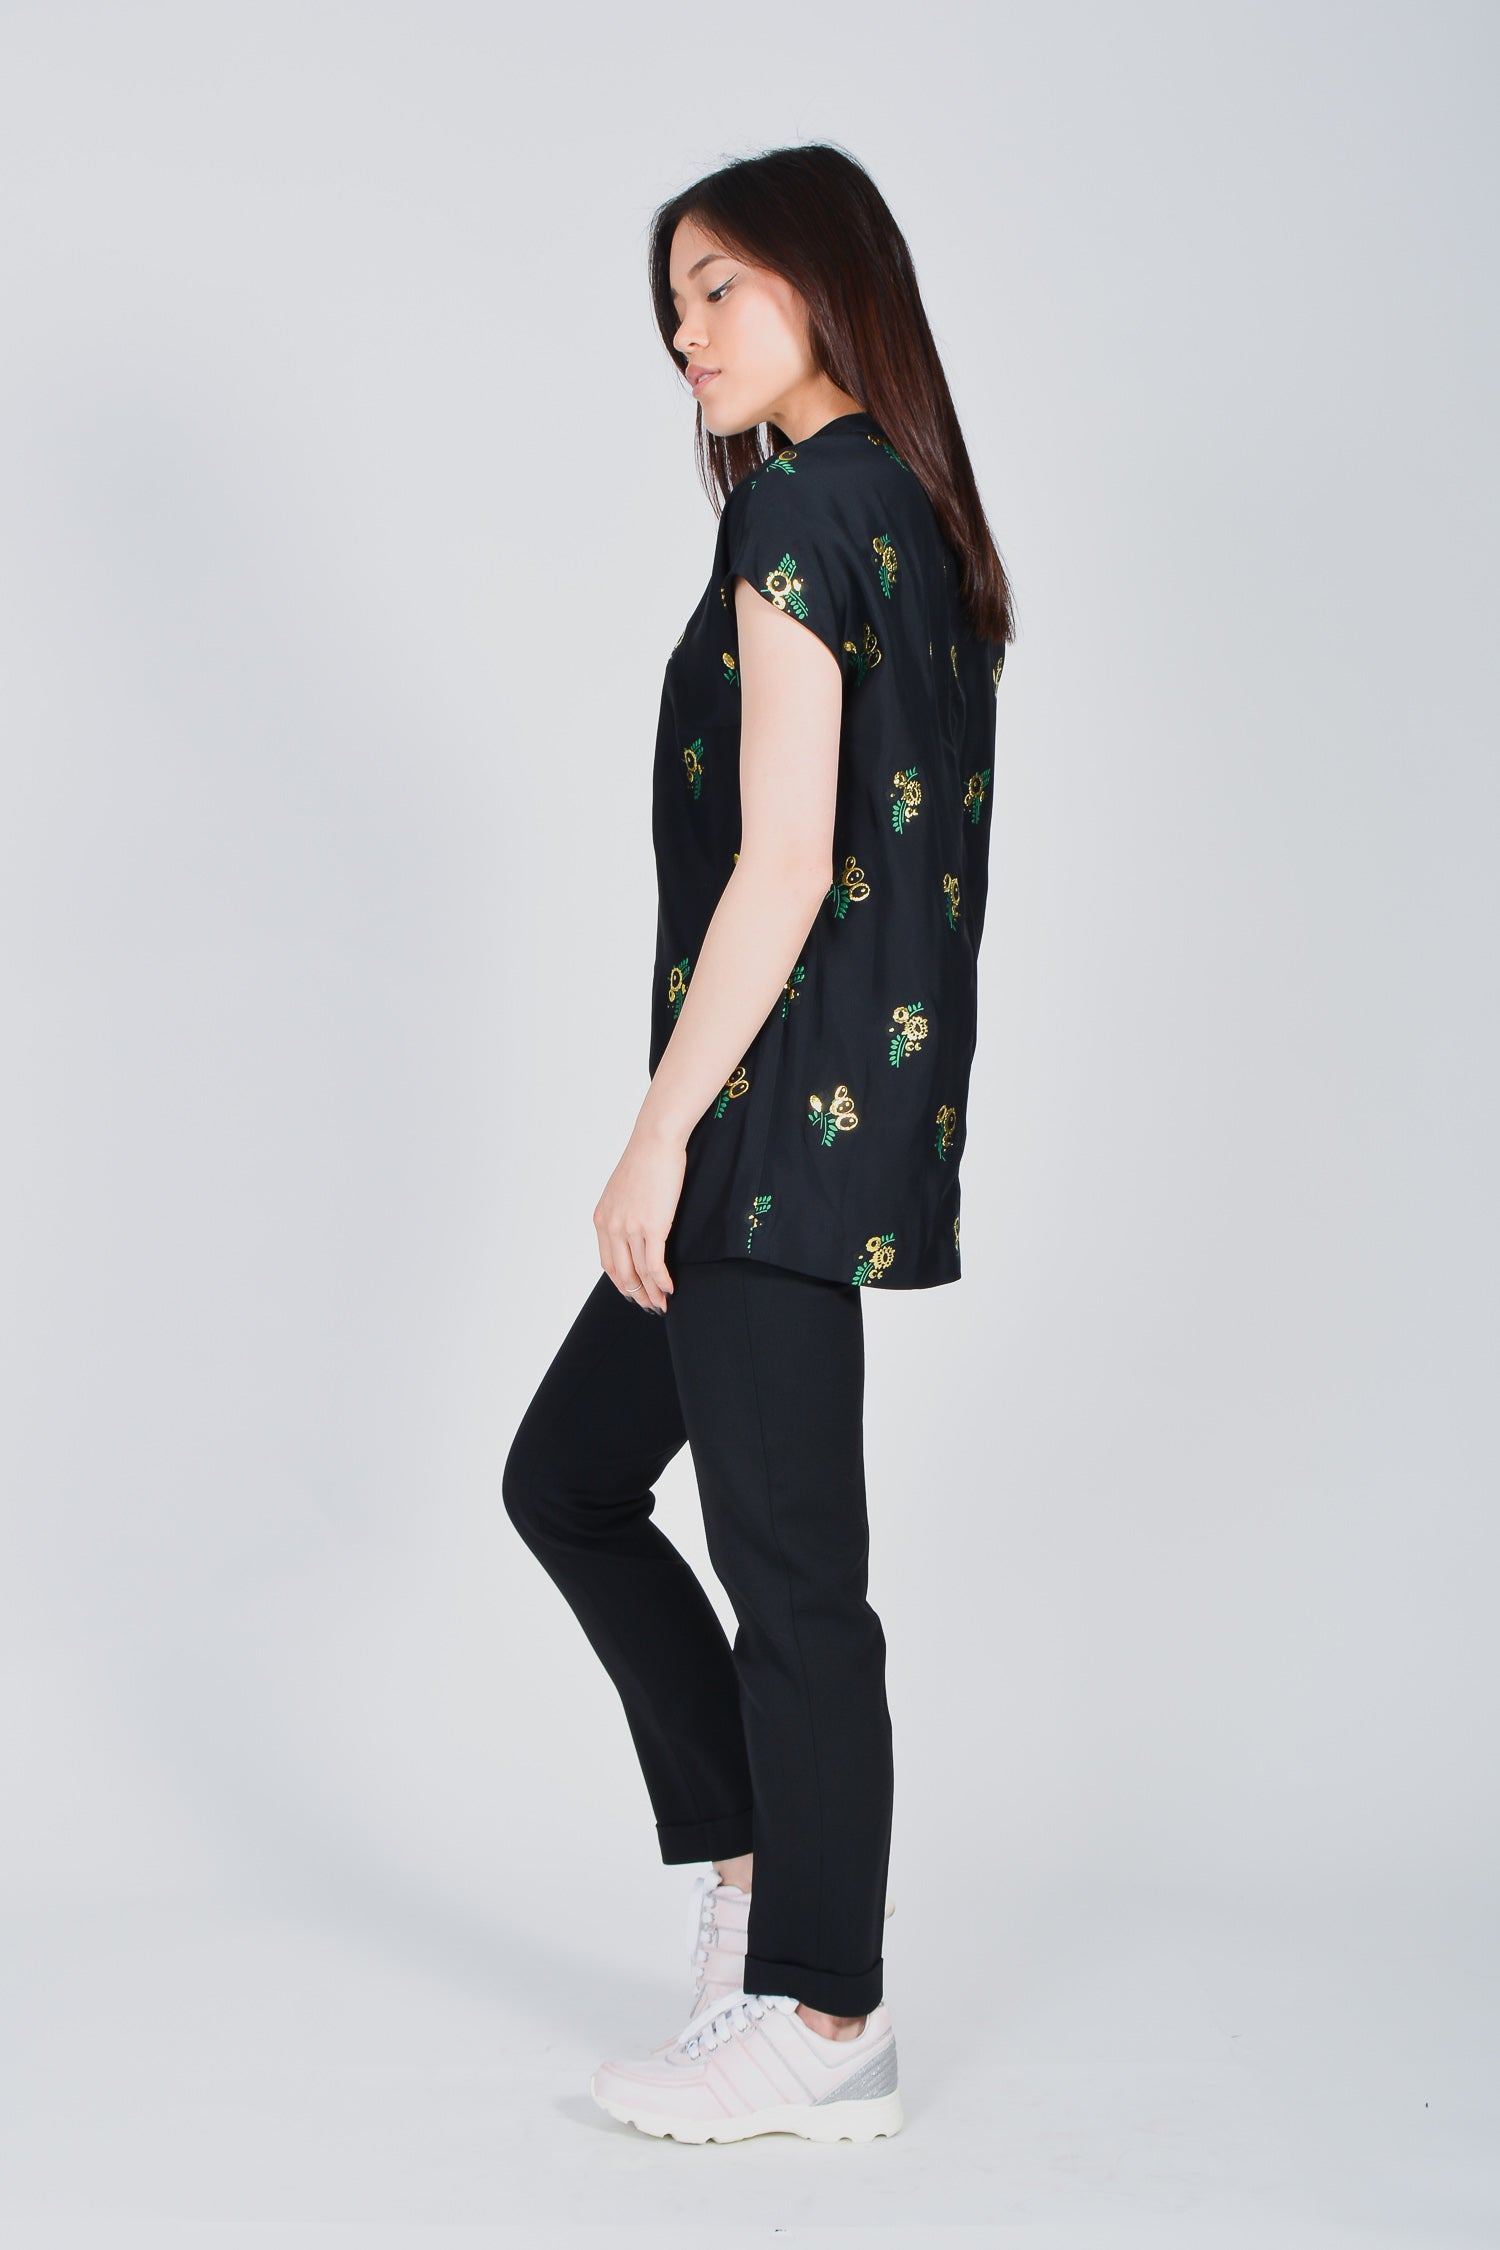 Stella McCartney Black Tunic with Gold Floral Details Size 40